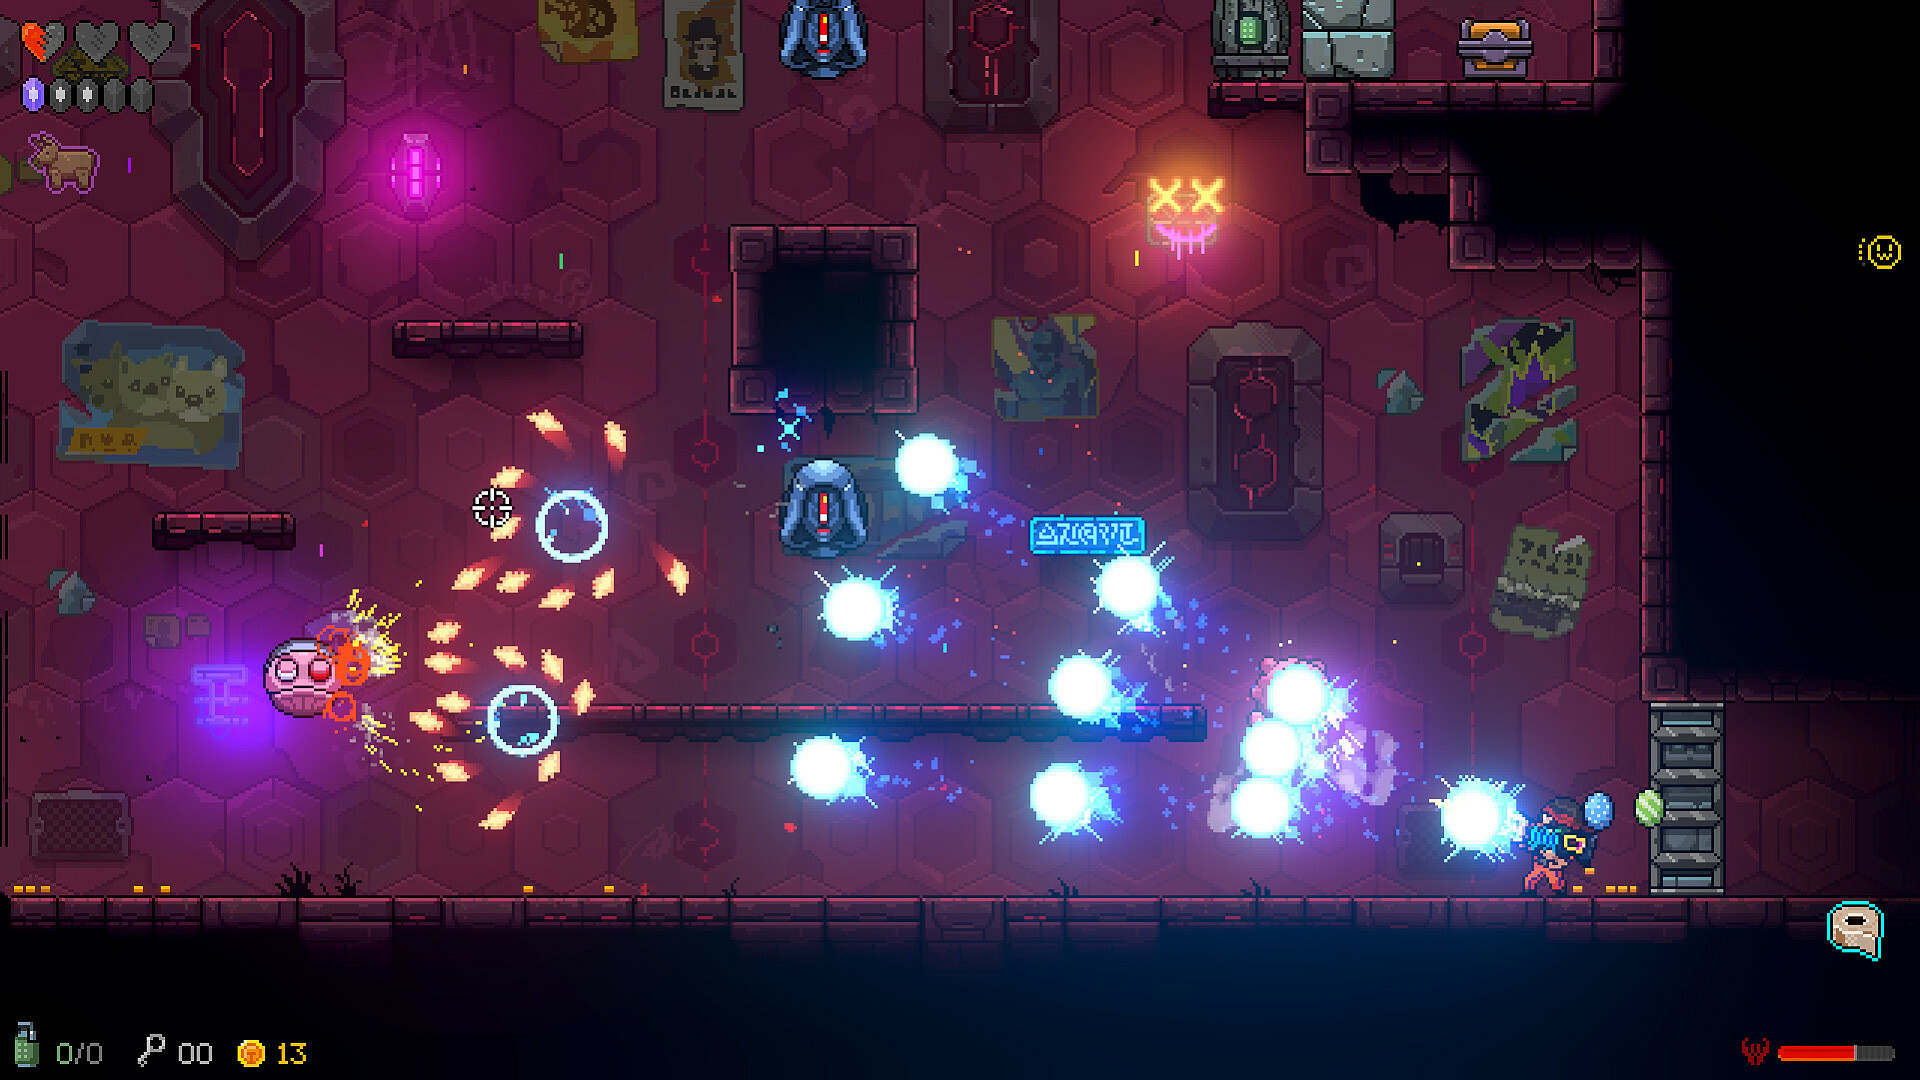 neon-abyss-deluxe-pc-screenshot-3